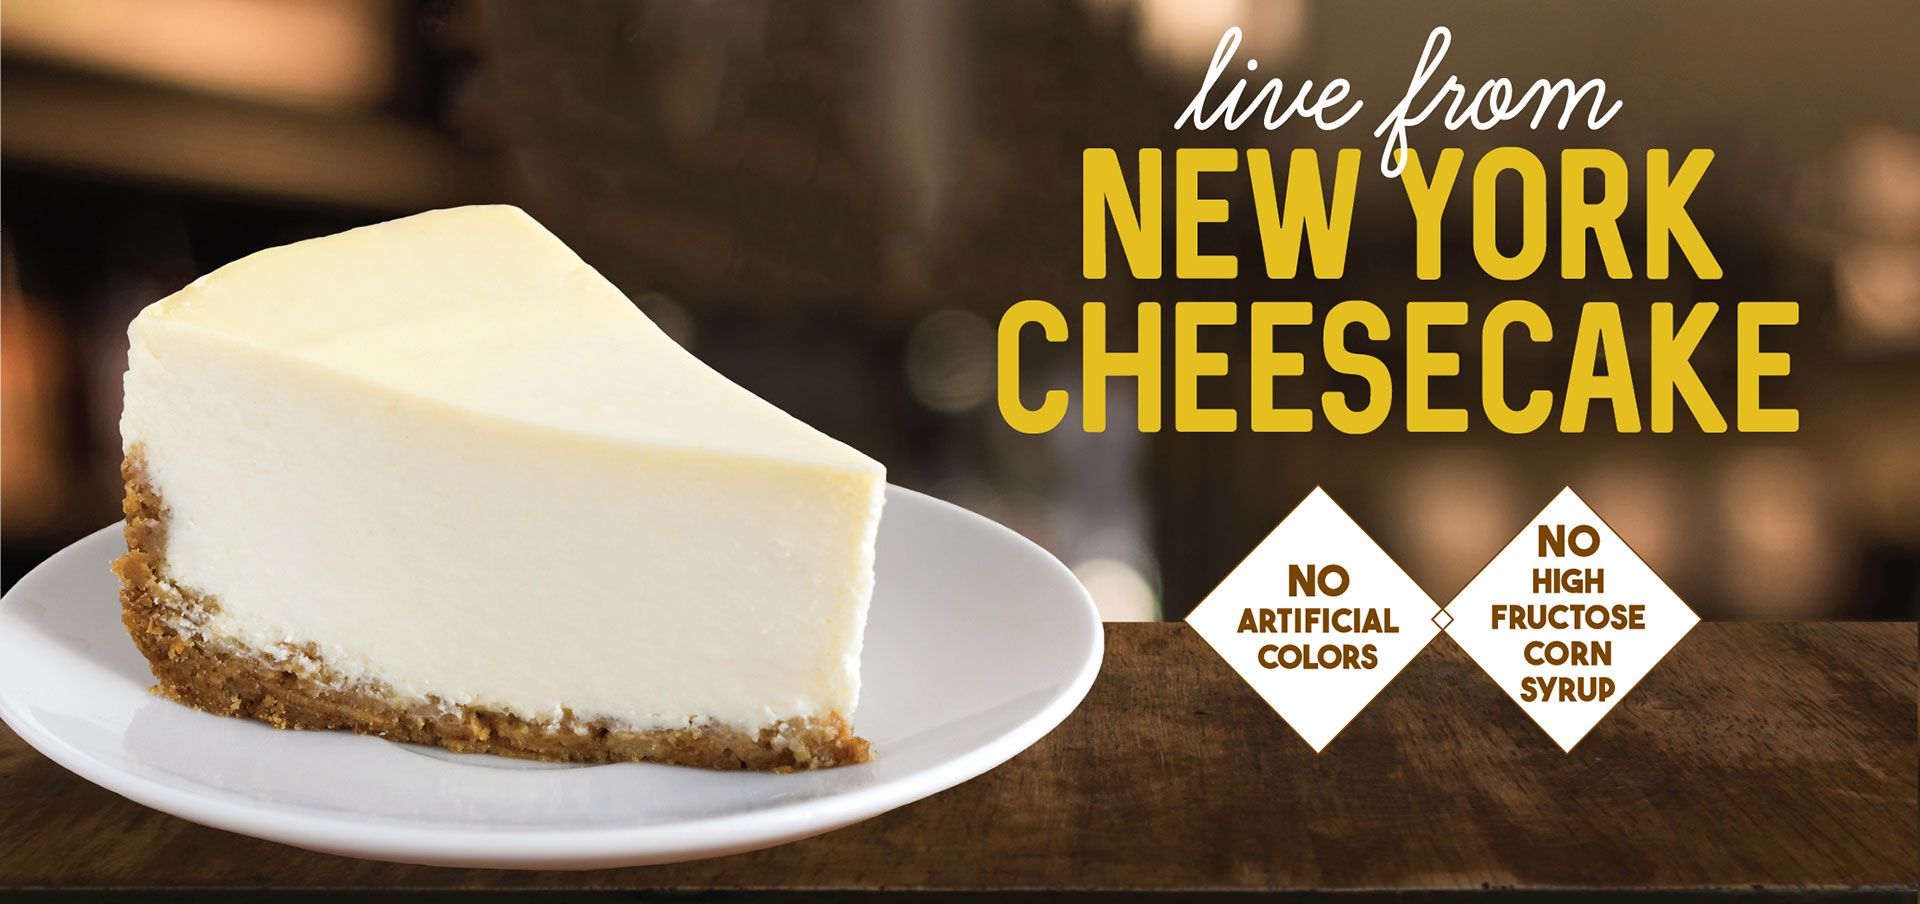 live from ny cheesecake label image